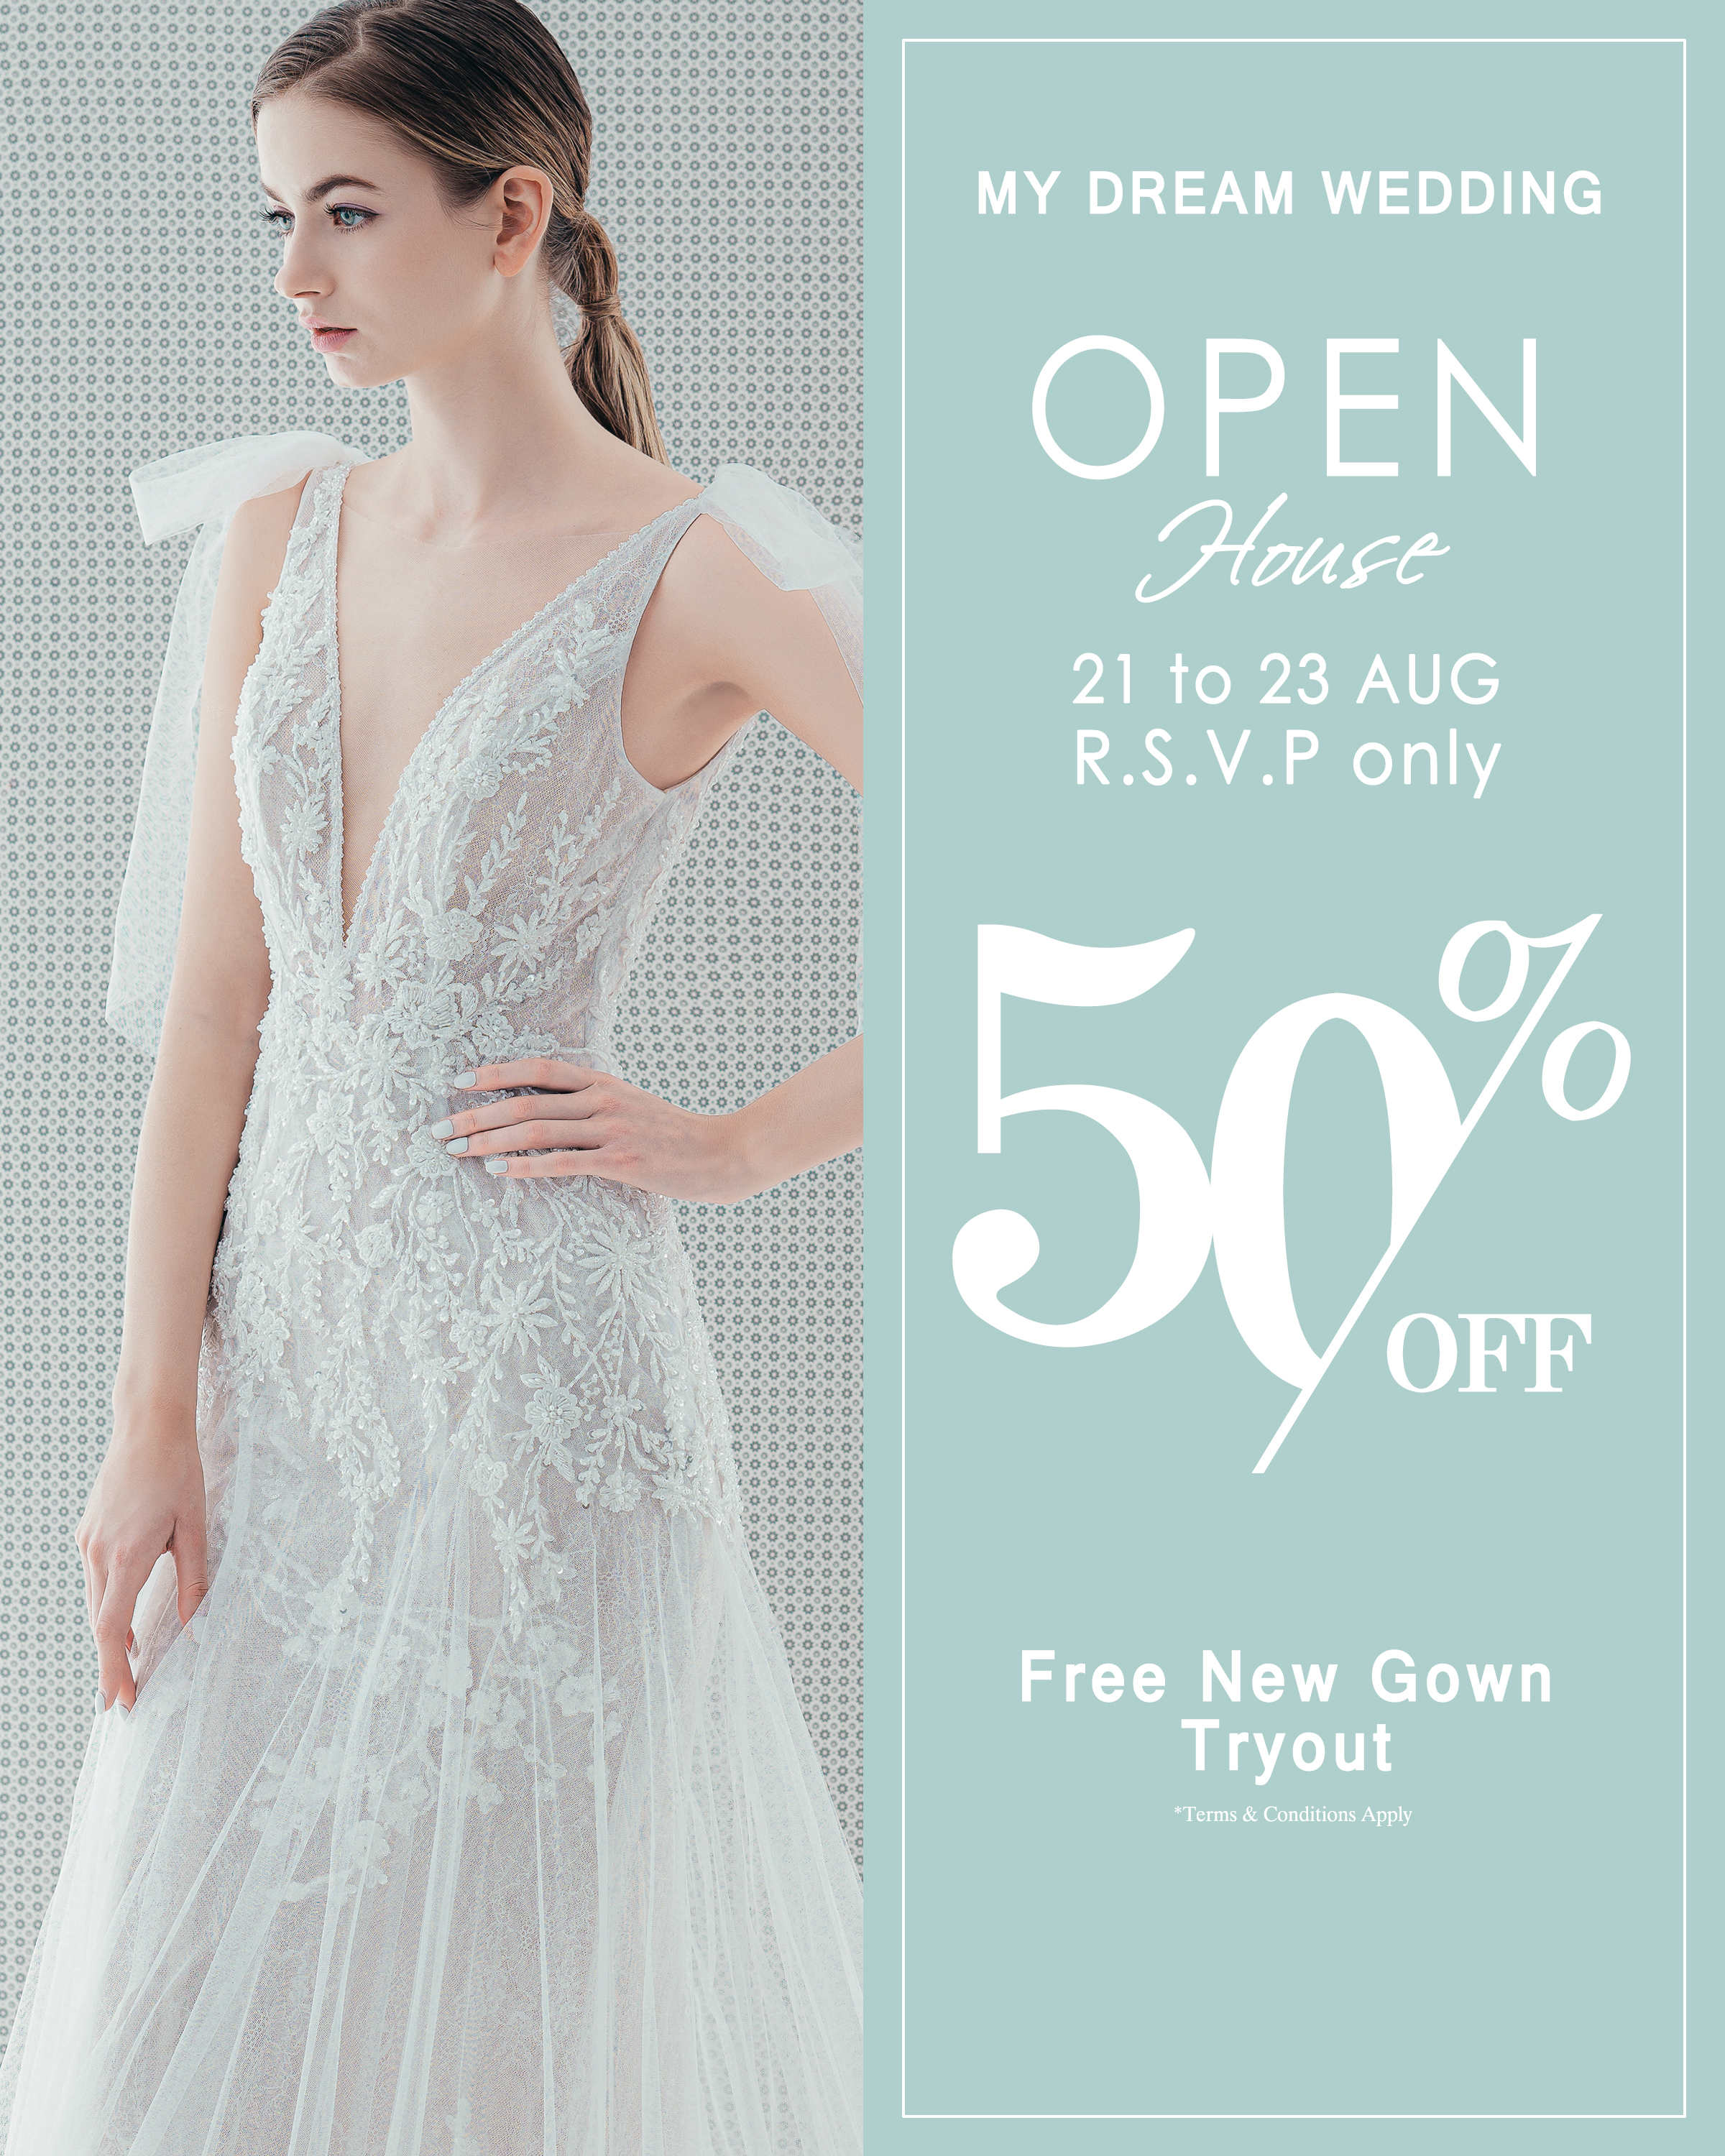 Open House with free new gown tryout